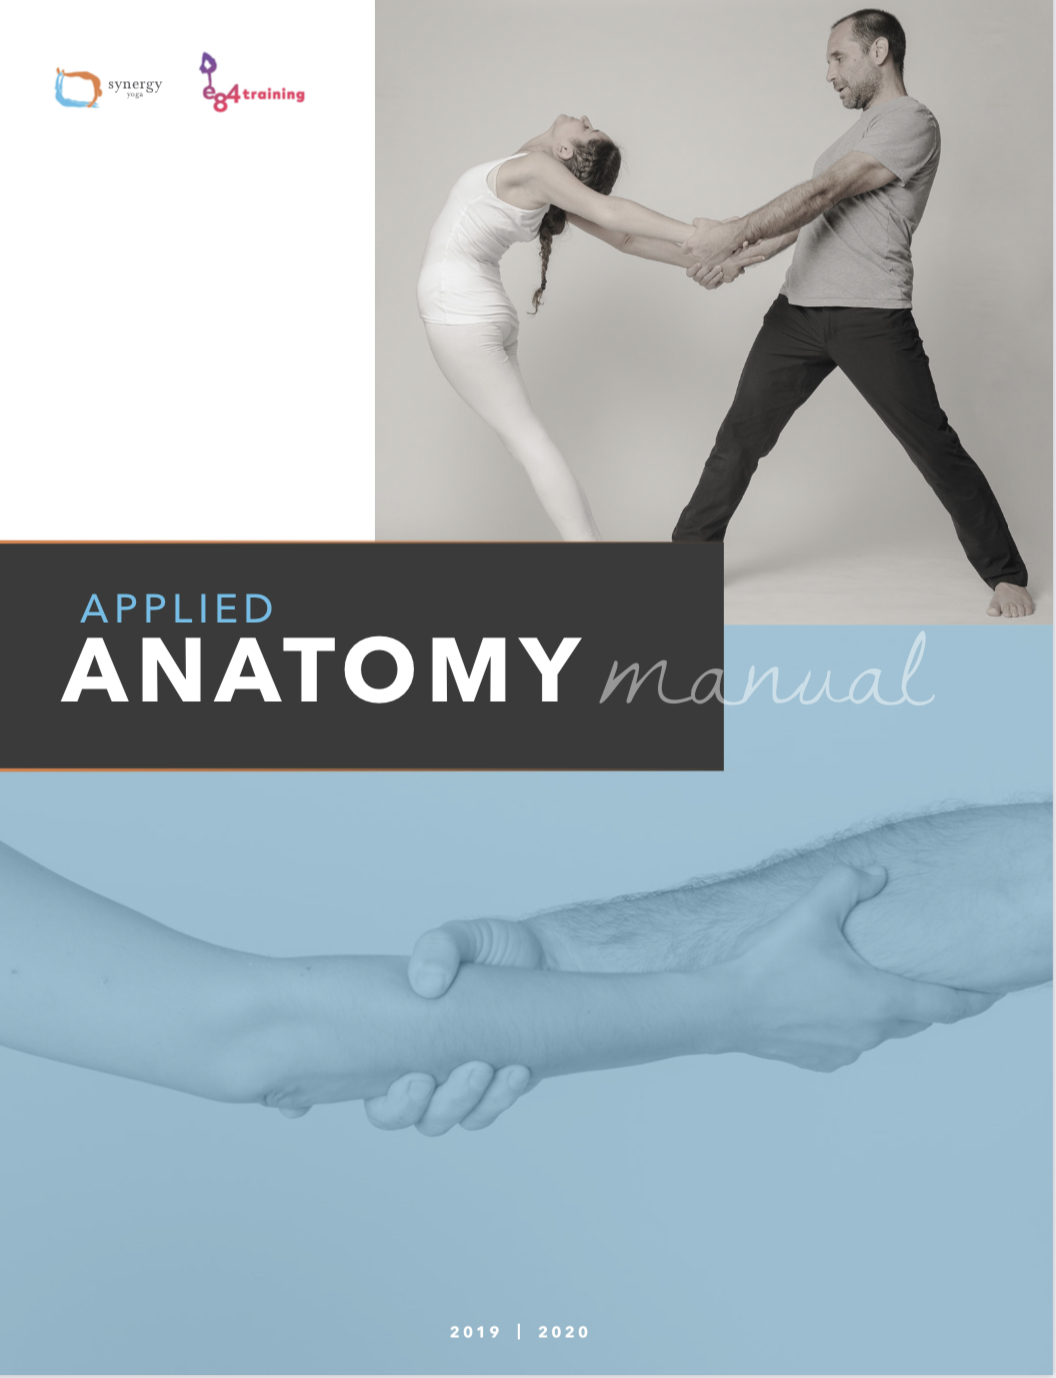 2017 Synergy Applied Anatomy Manual